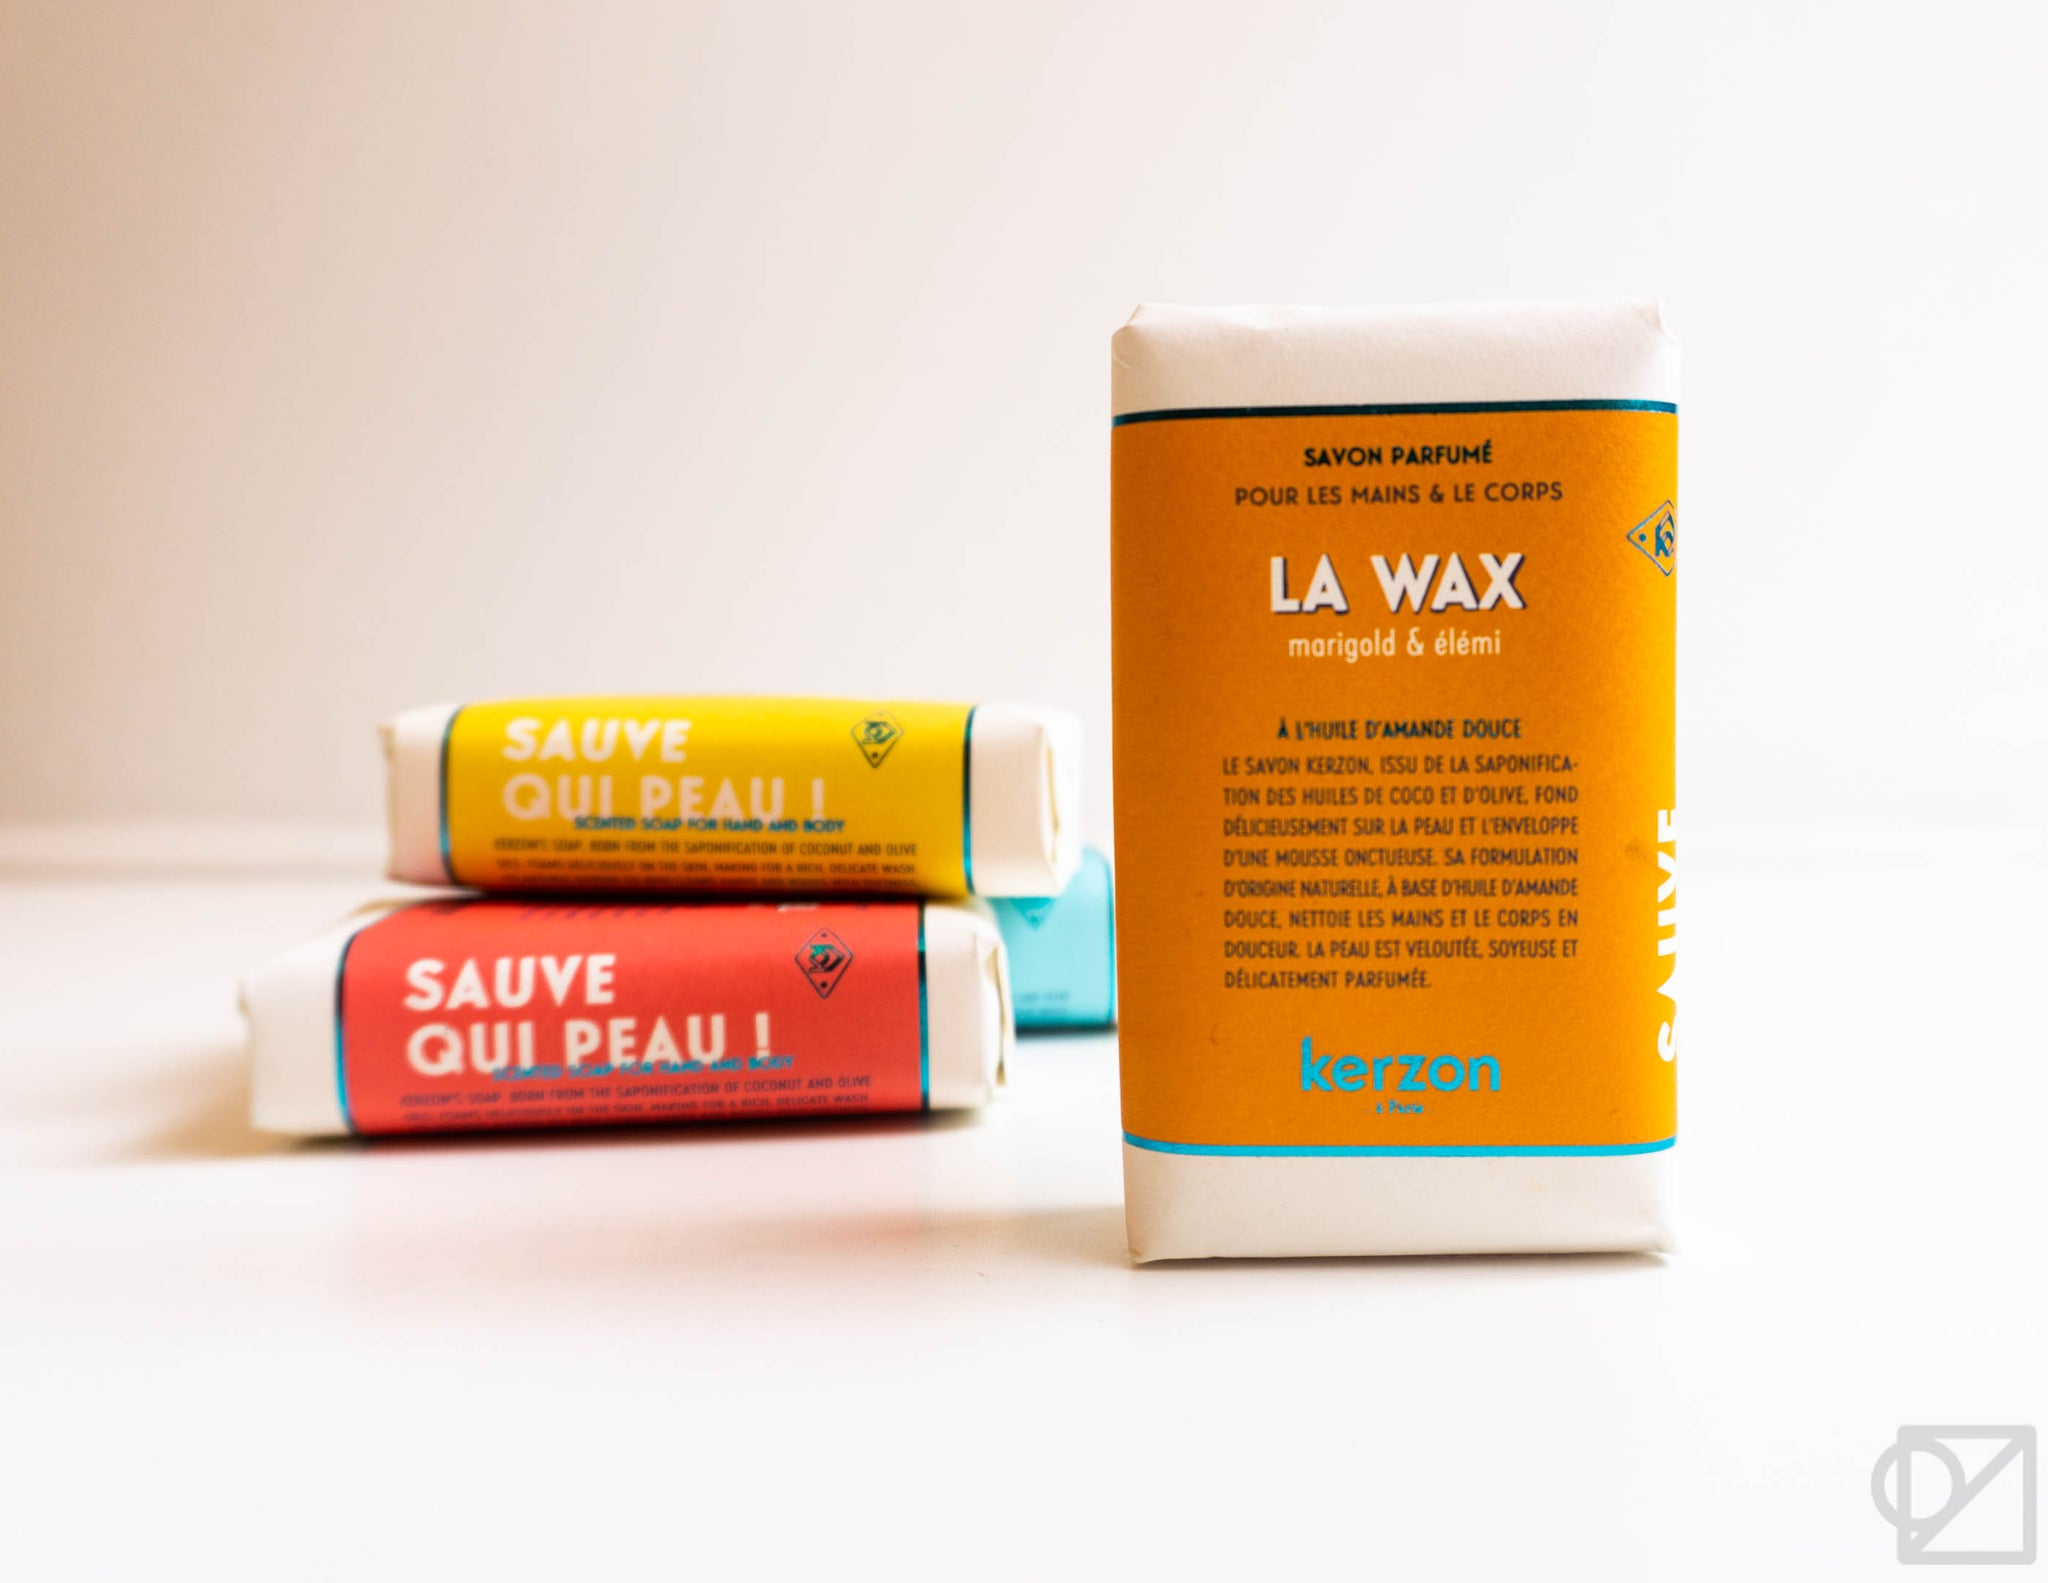 Kerzon Soap La Wax